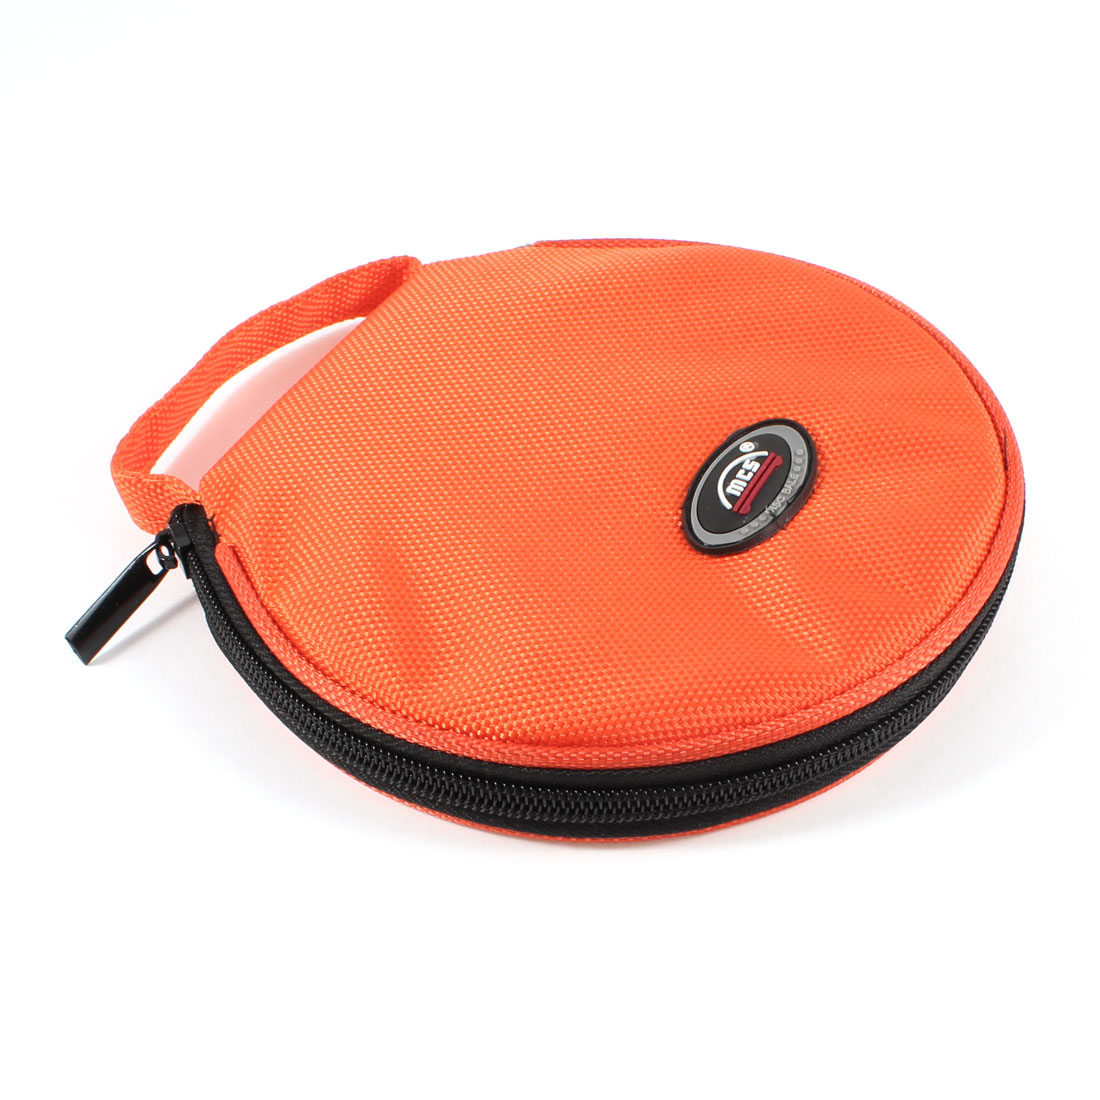 Portable 20 Pcs Capacity CD DVD Wallet Case Storage Holder Orange Red for Car